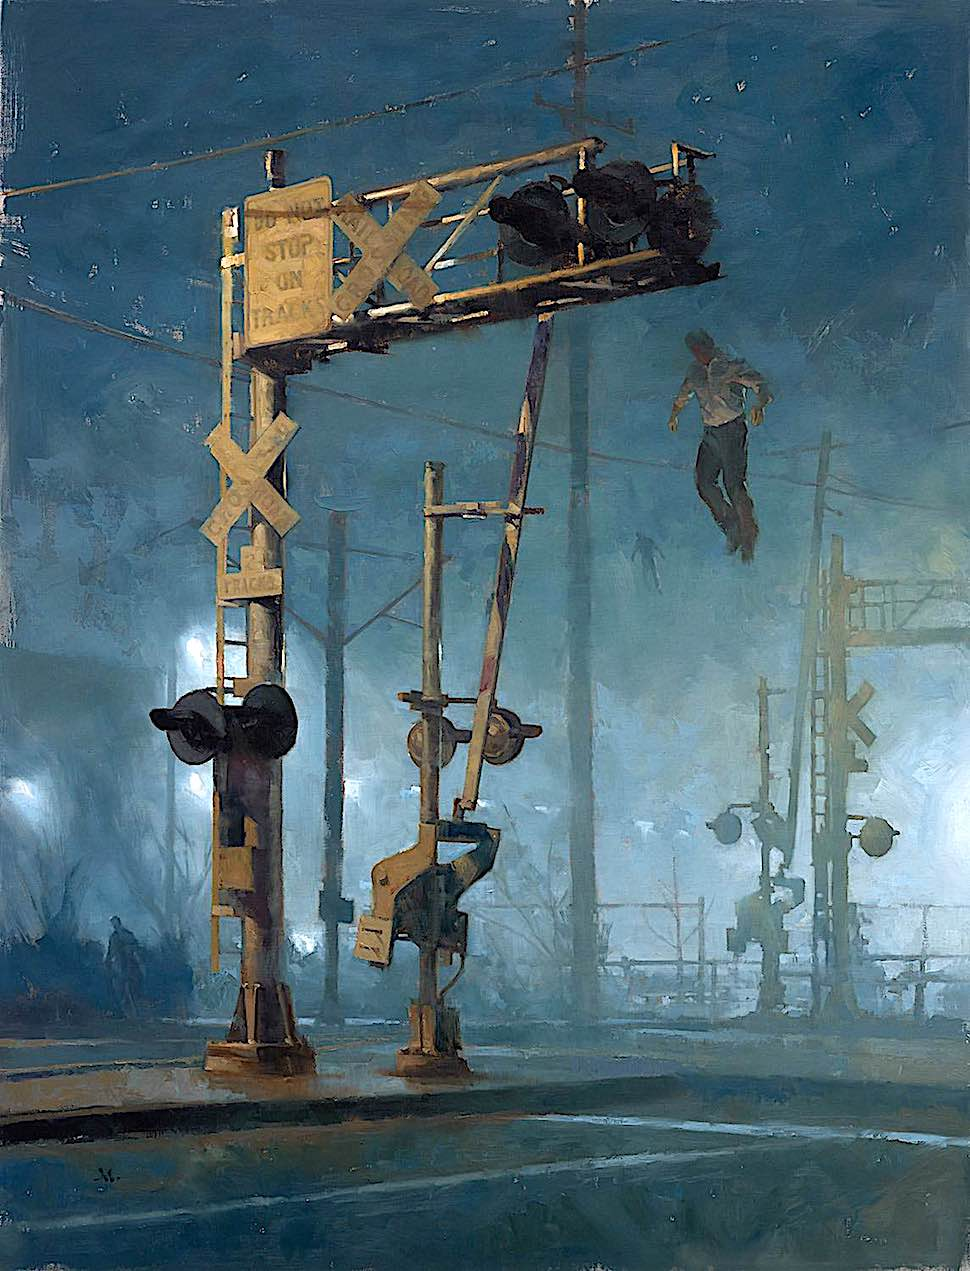 Gregory Manchess, a strange scene at night at a train rail crossing